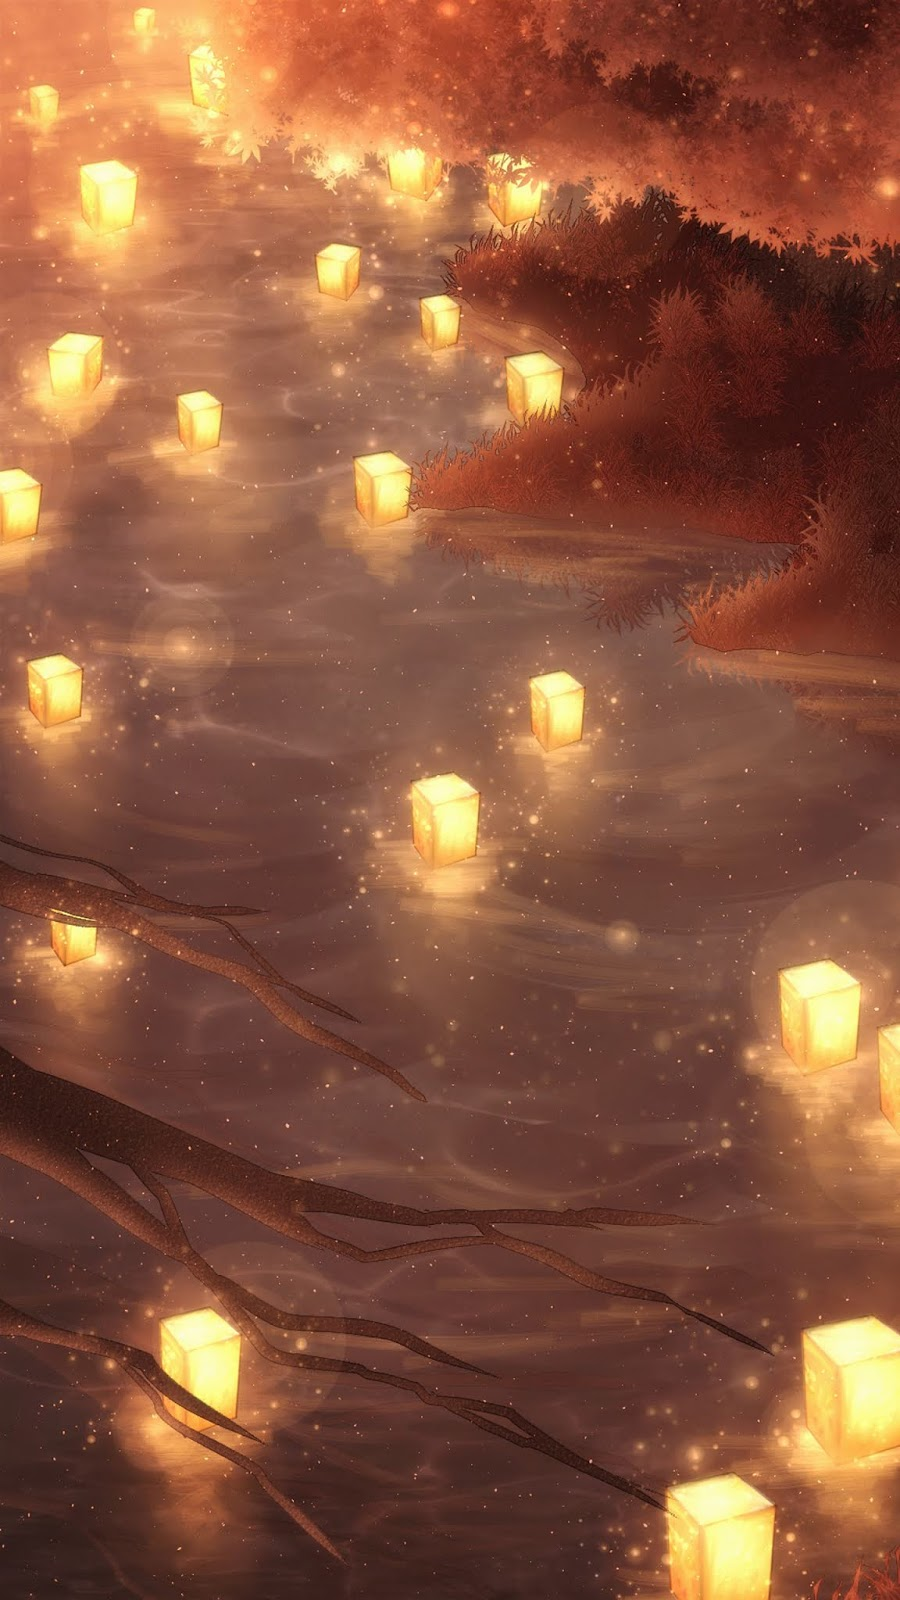 A river of light wallpaper